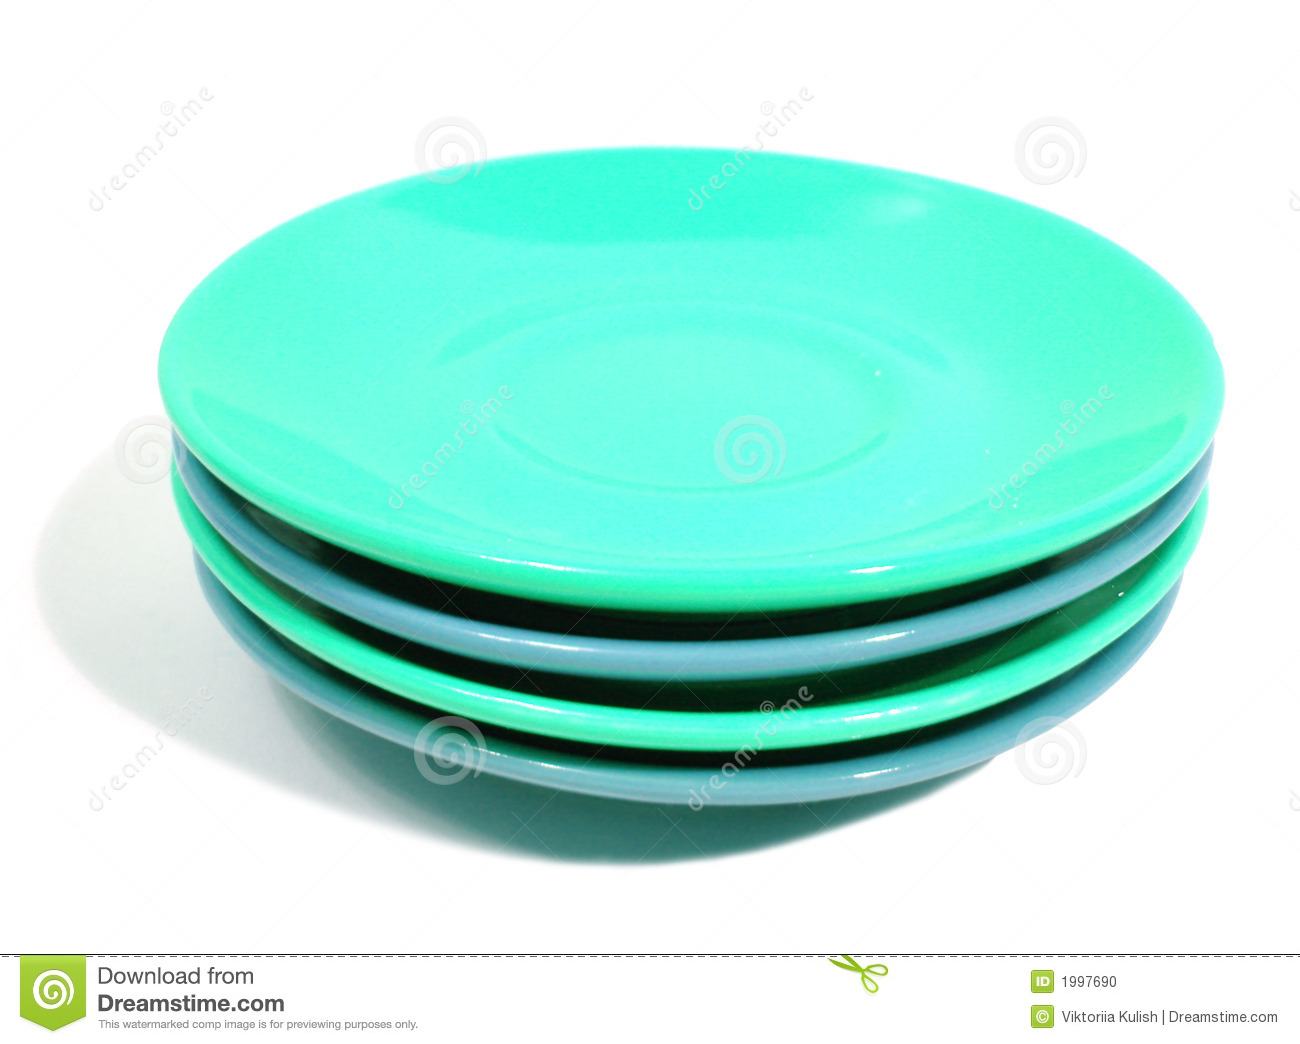 Stack Of Plates Clipart.